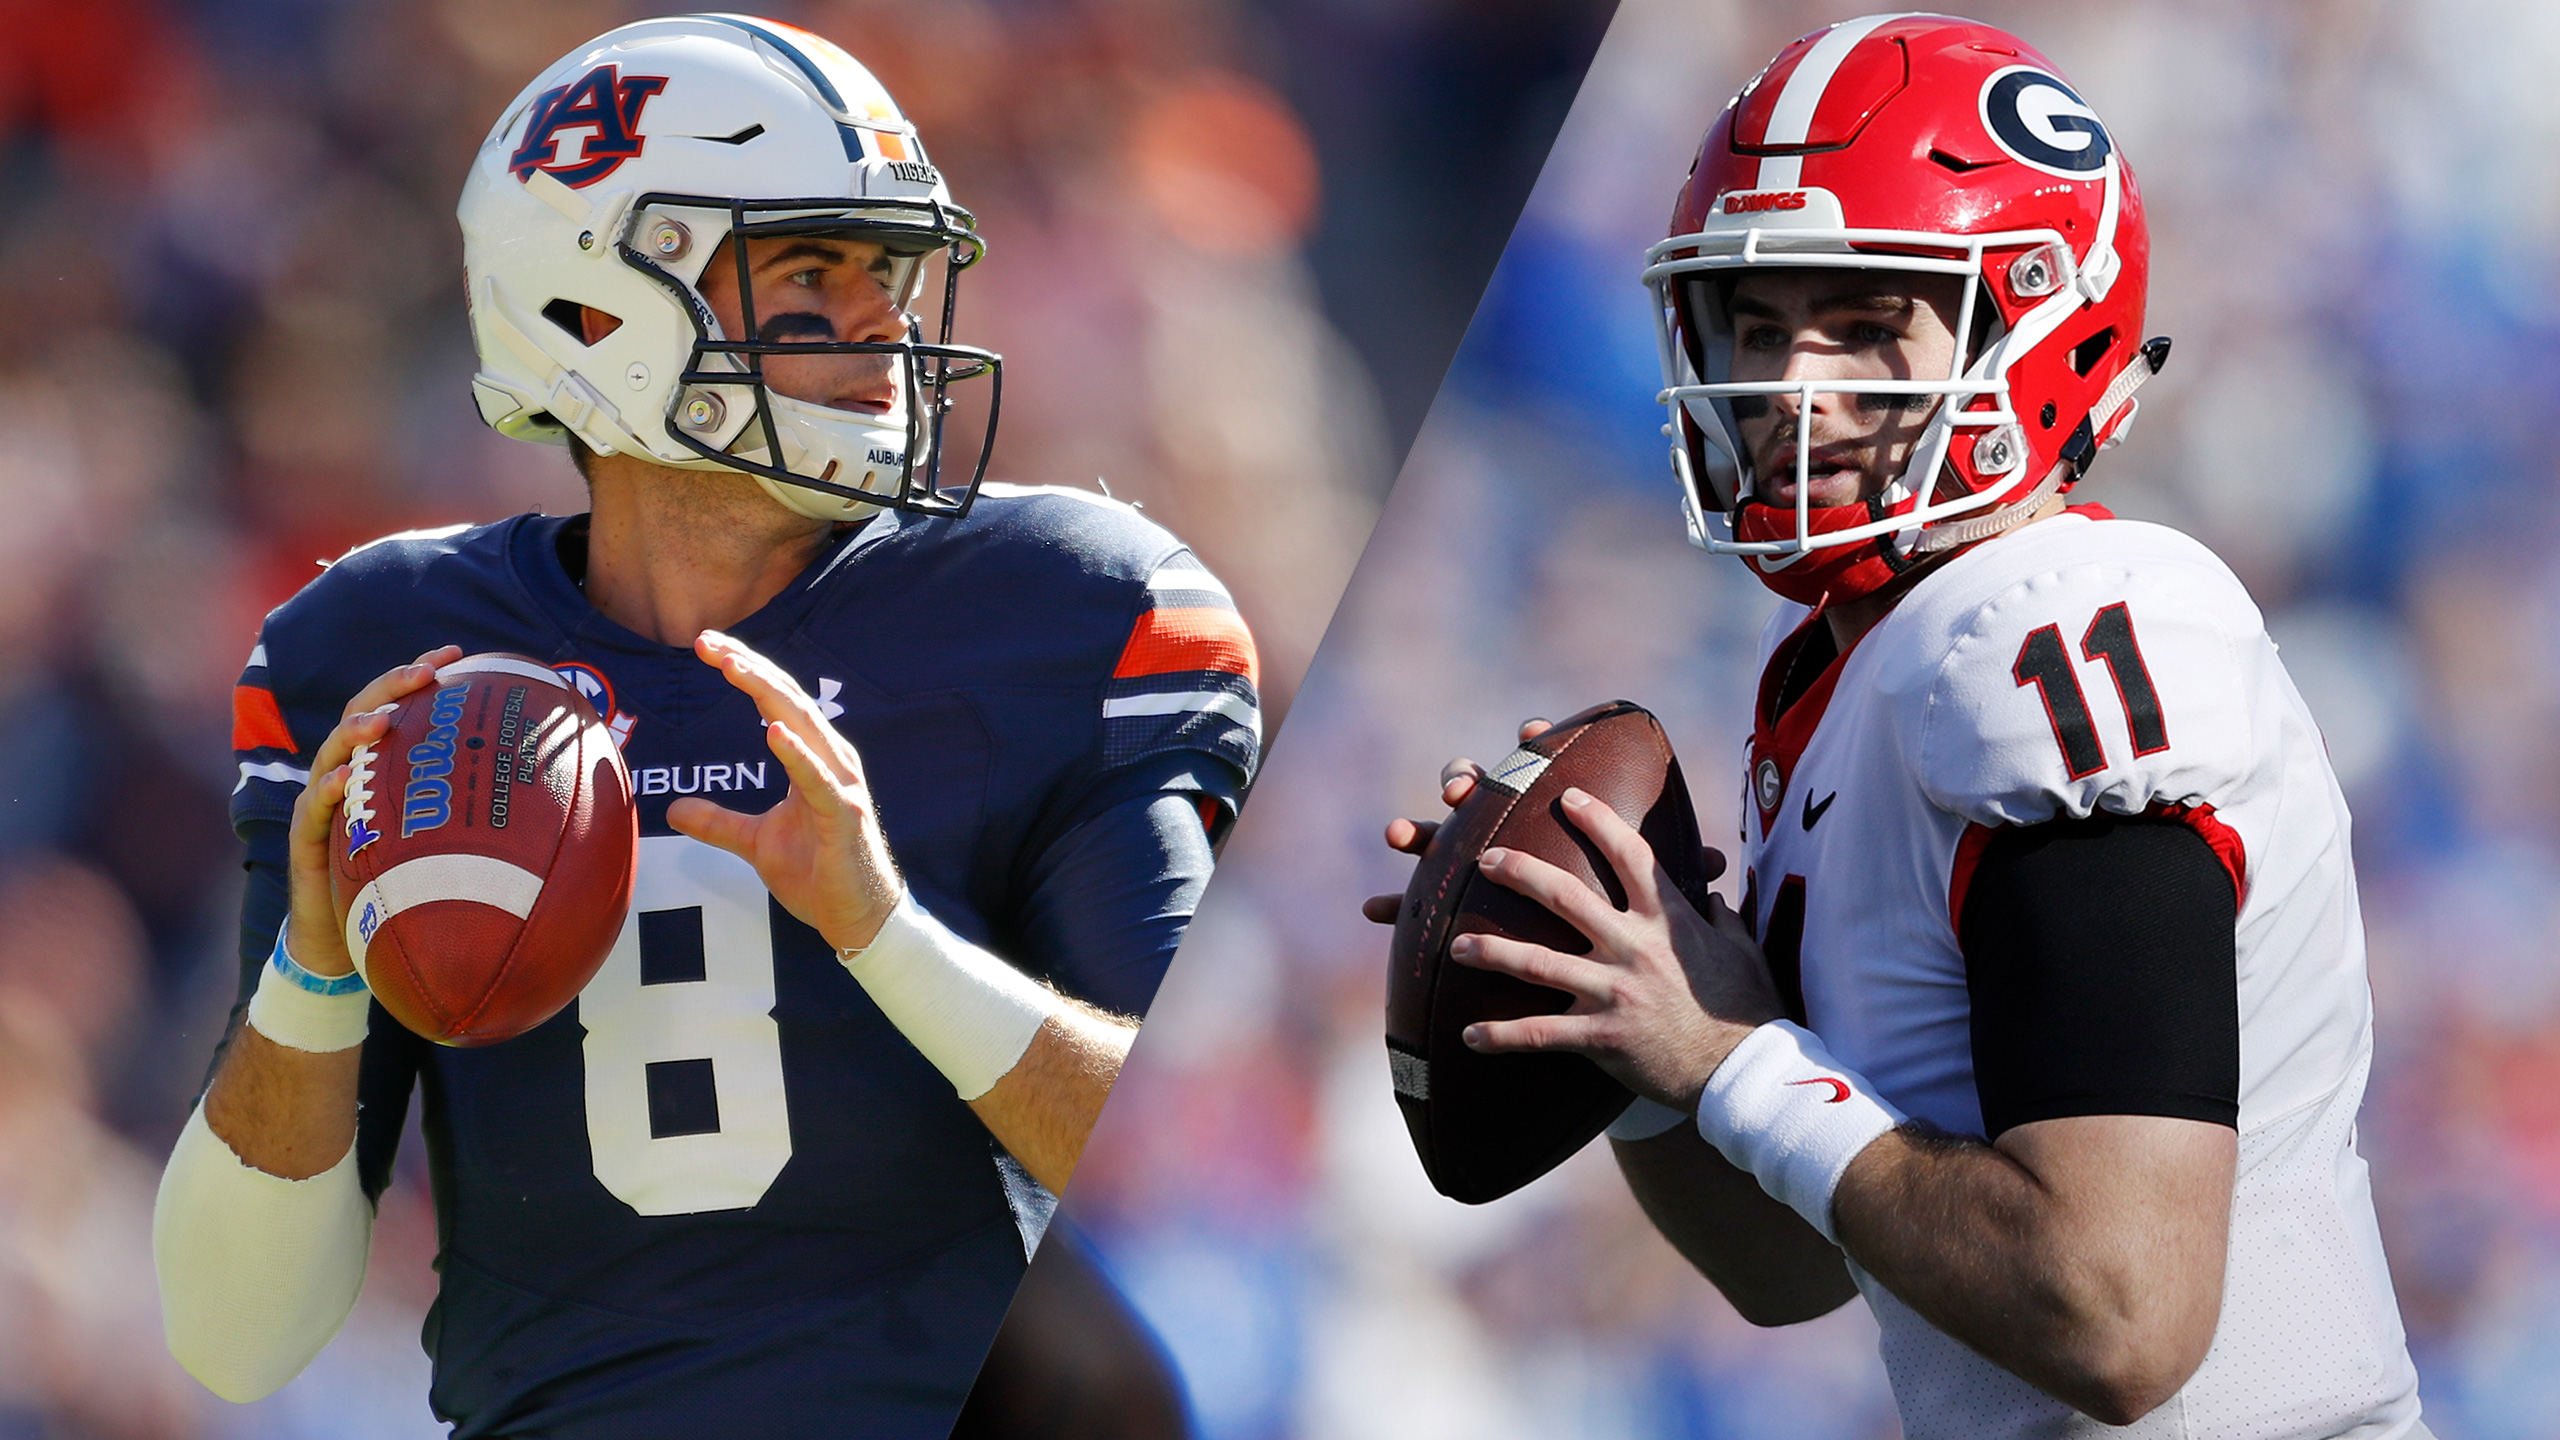 #24 Auburn vs. #5 Georgia (Football) (re-air)